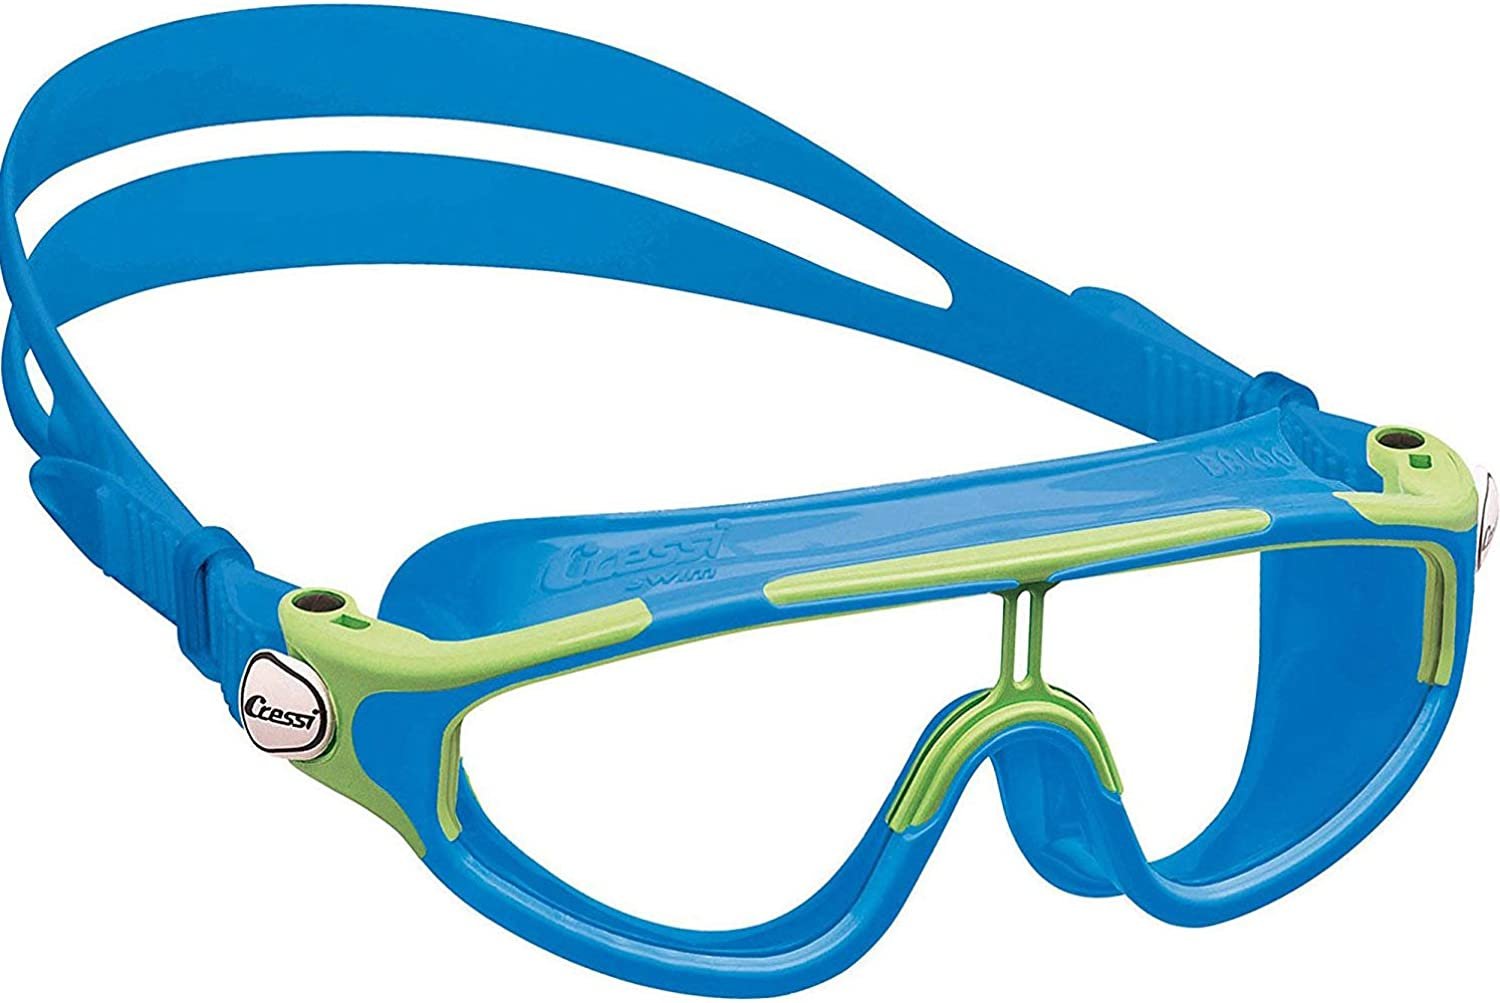 (Light blueee Lime) - Cressi Baloo - Premium Swim Goggle Kid's Mask 2 7 Years - Made in